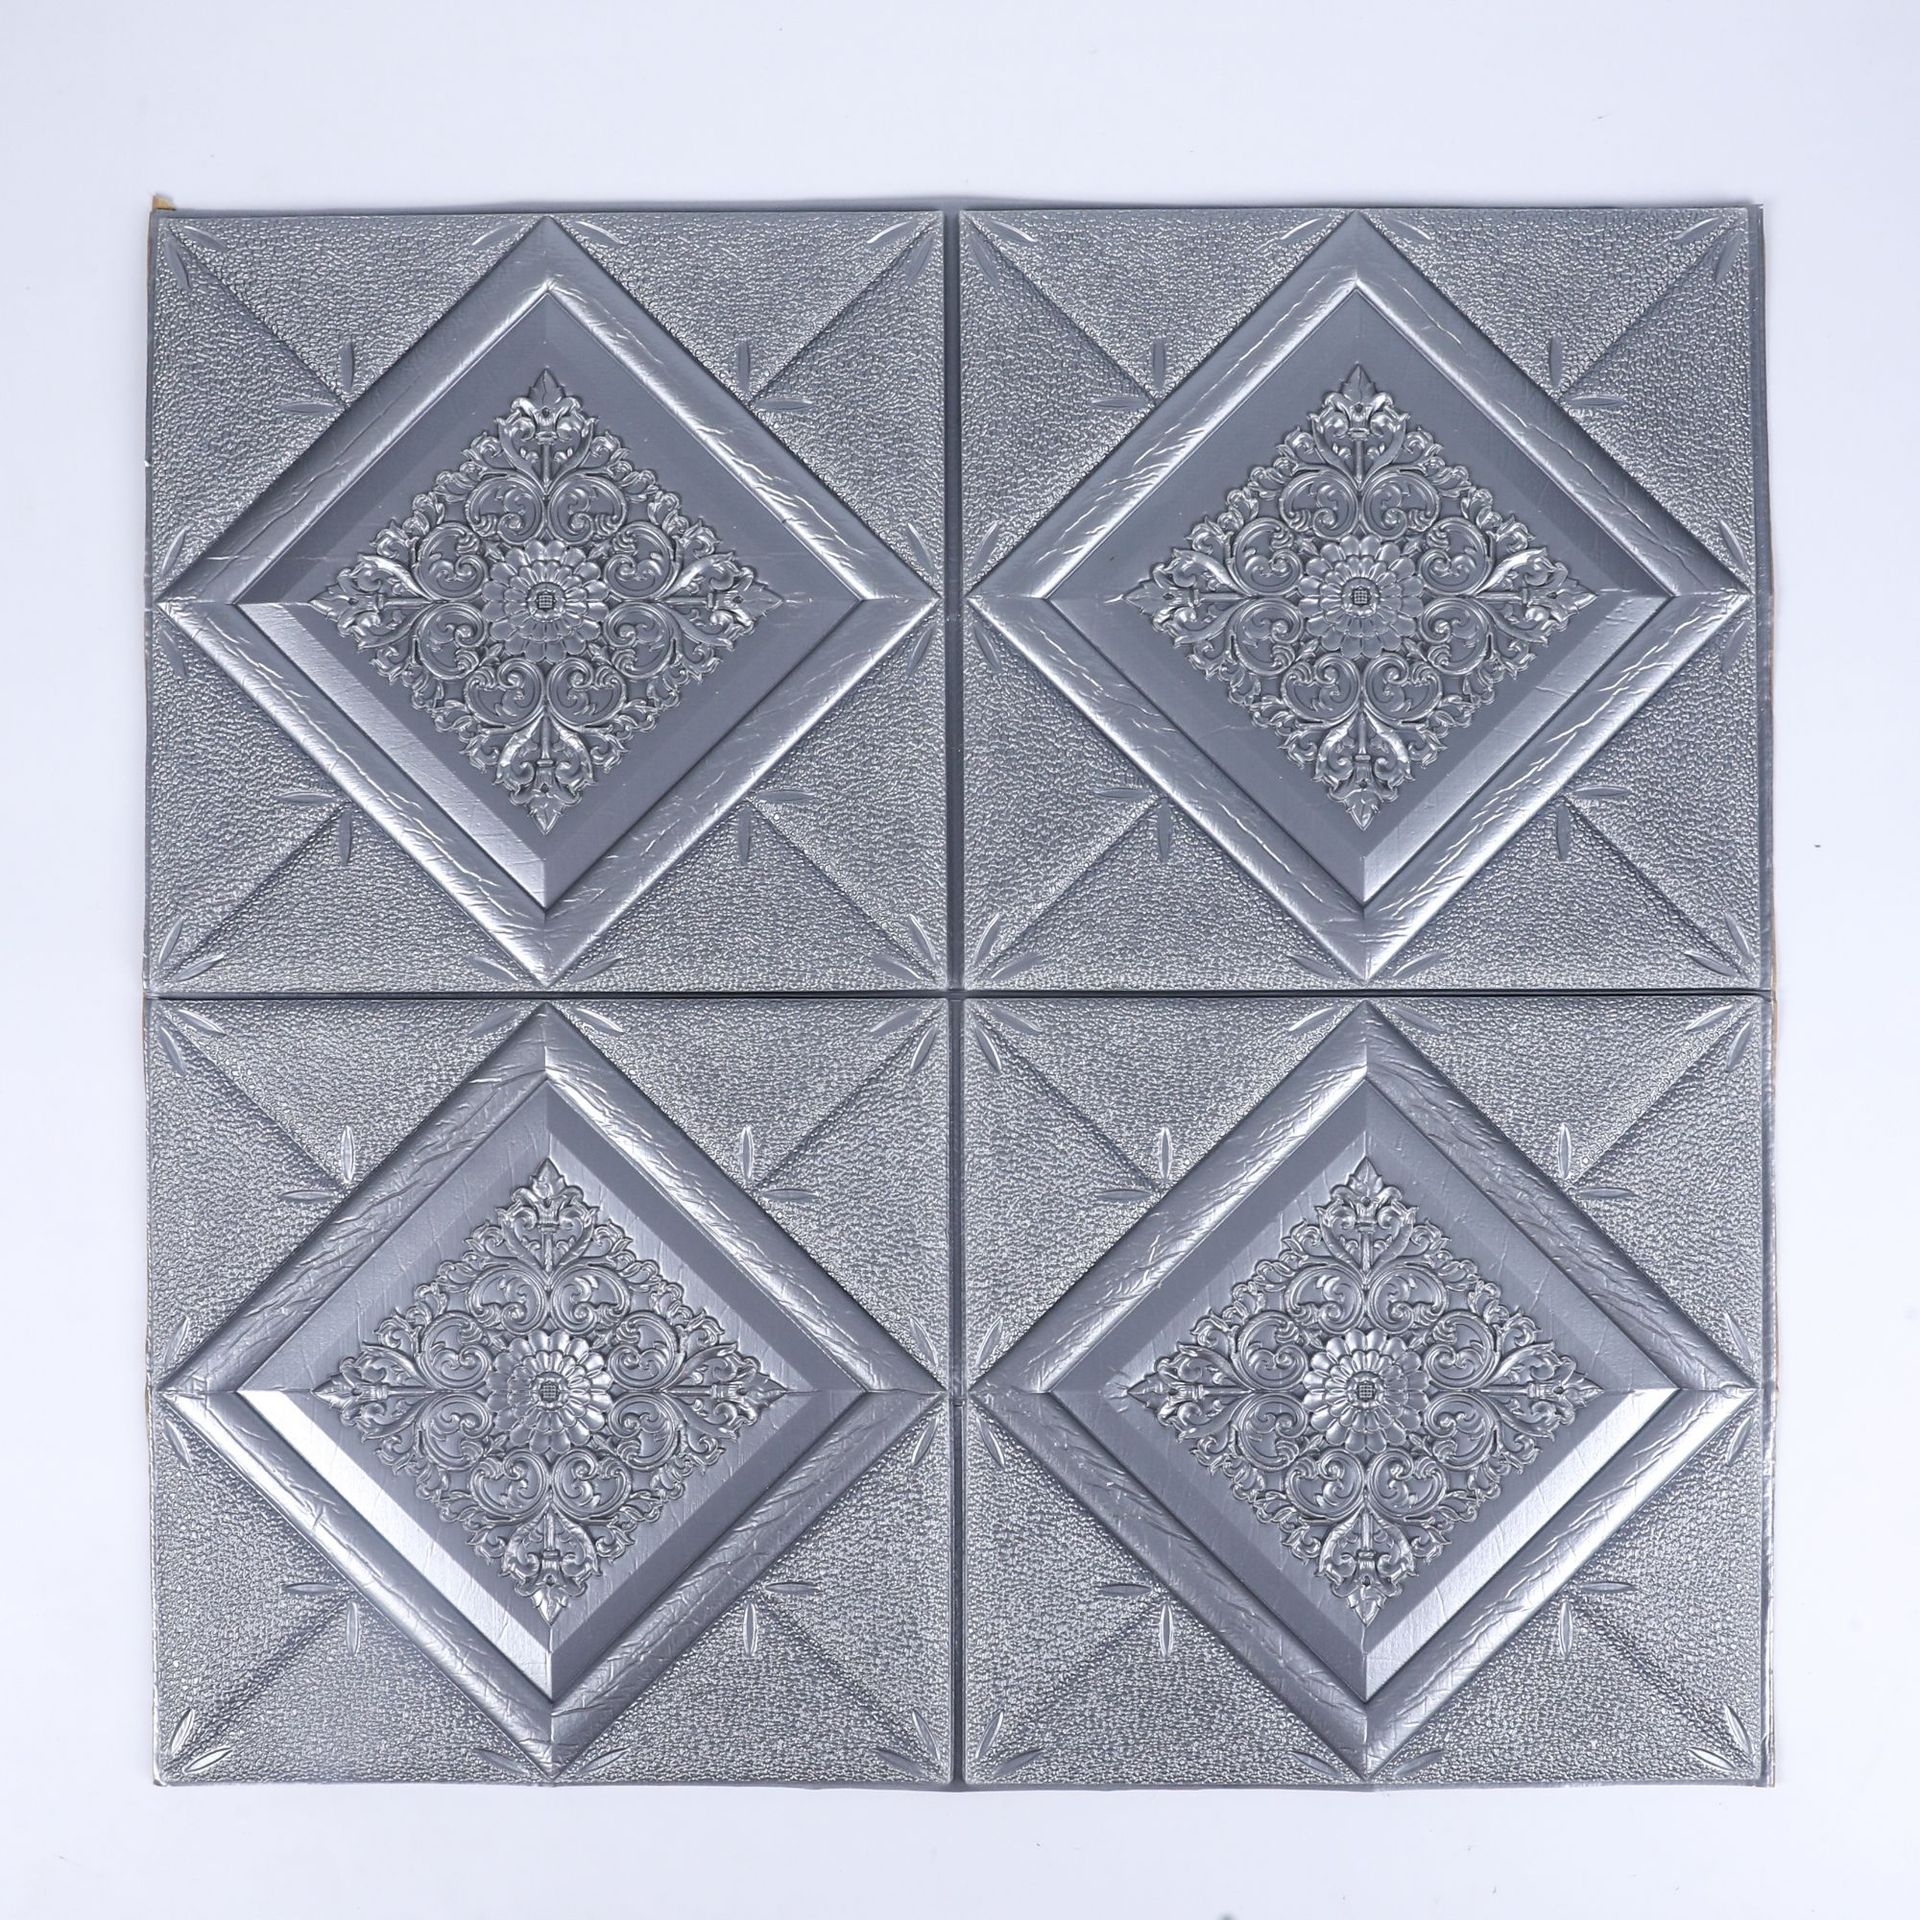 Adhesive Patterned Tile Sticker for Rental Rooms